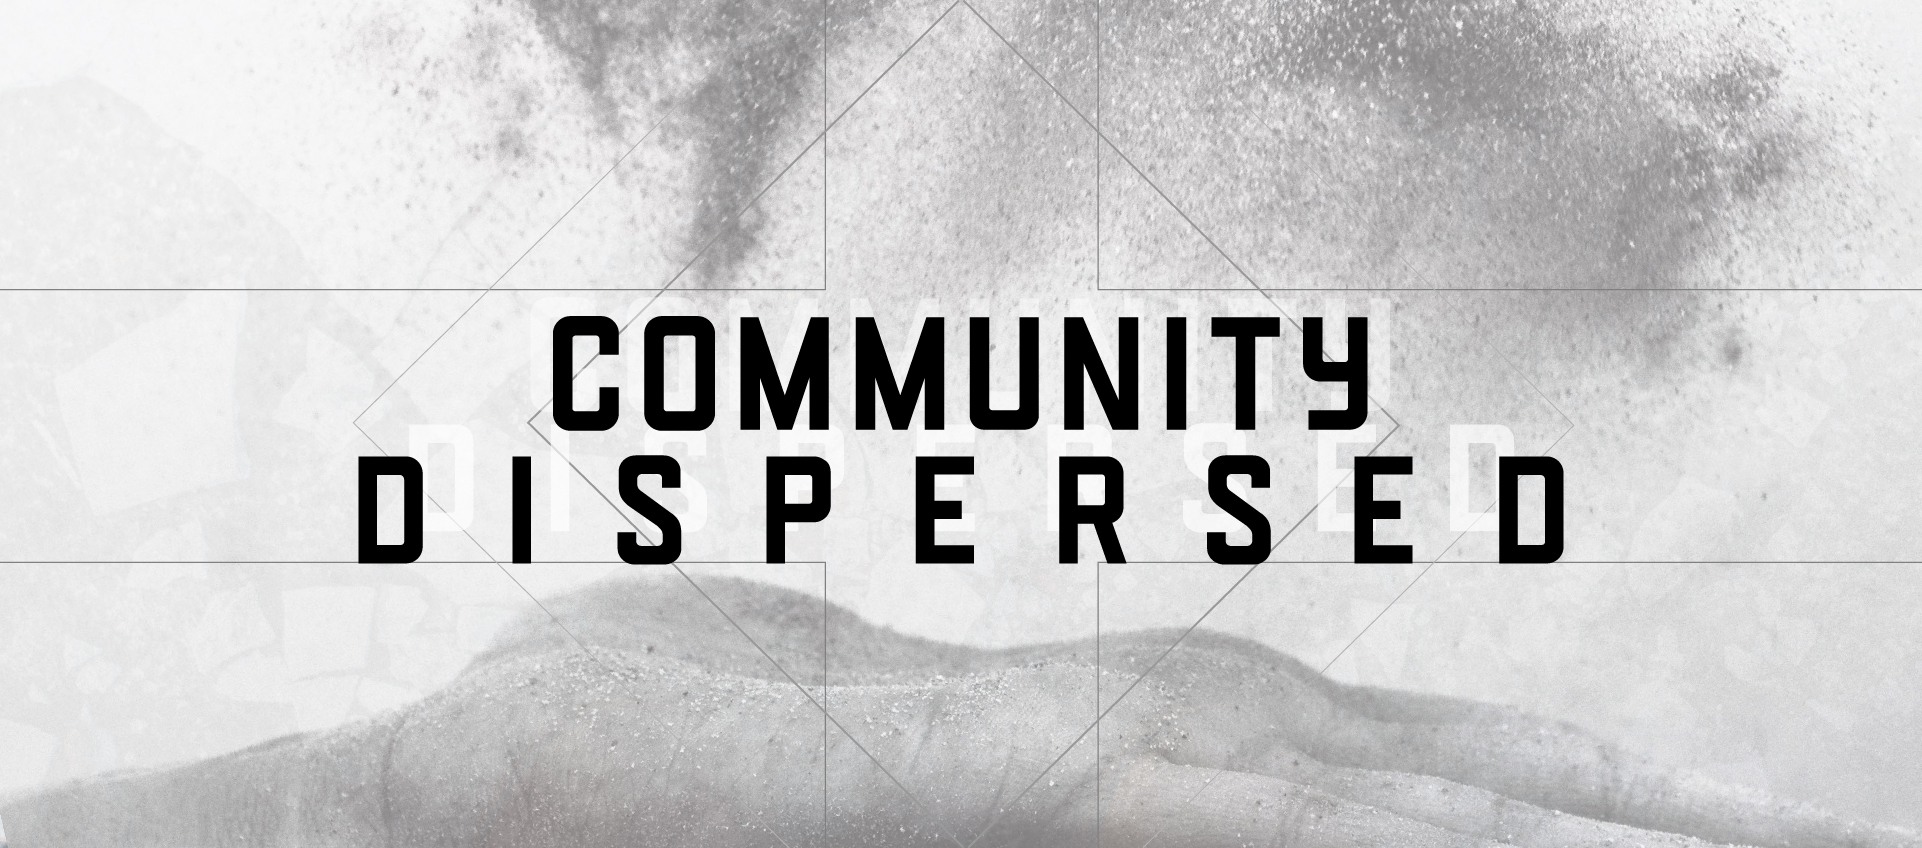 Community dispersed title image